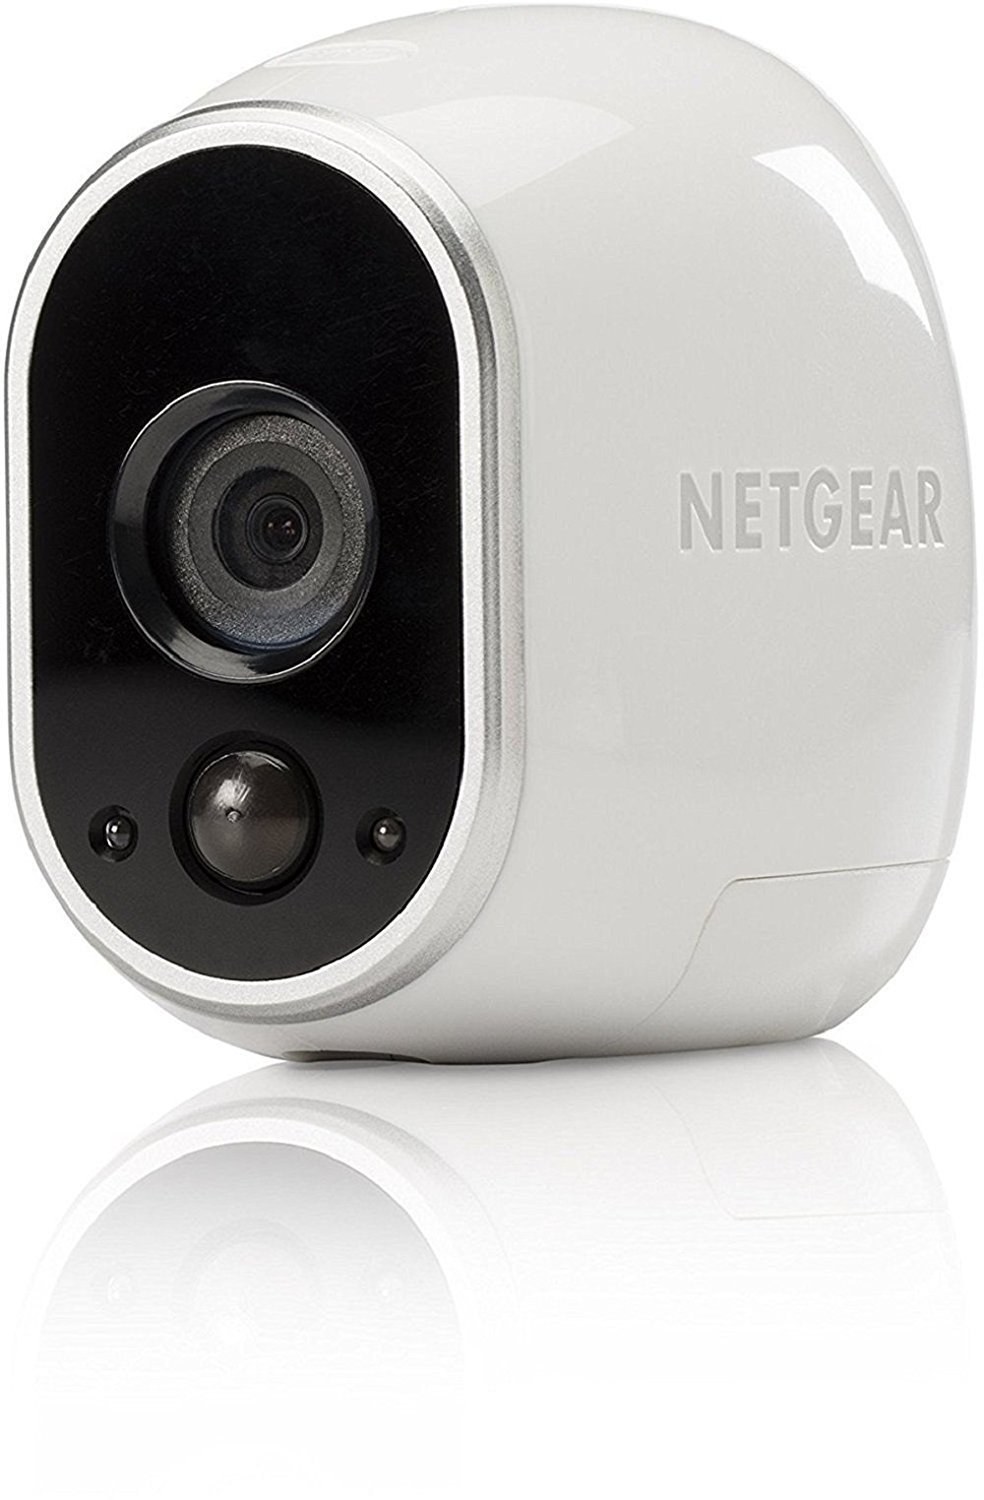 Arlo Add-on Camera with Motion Detection, Night Vision, Indoor/Outdoor, HD Video, Wall Mount, Security, Cloud Storage Included, Works with Arlo Base Station (VMC3030), White VMC3030-100EUS